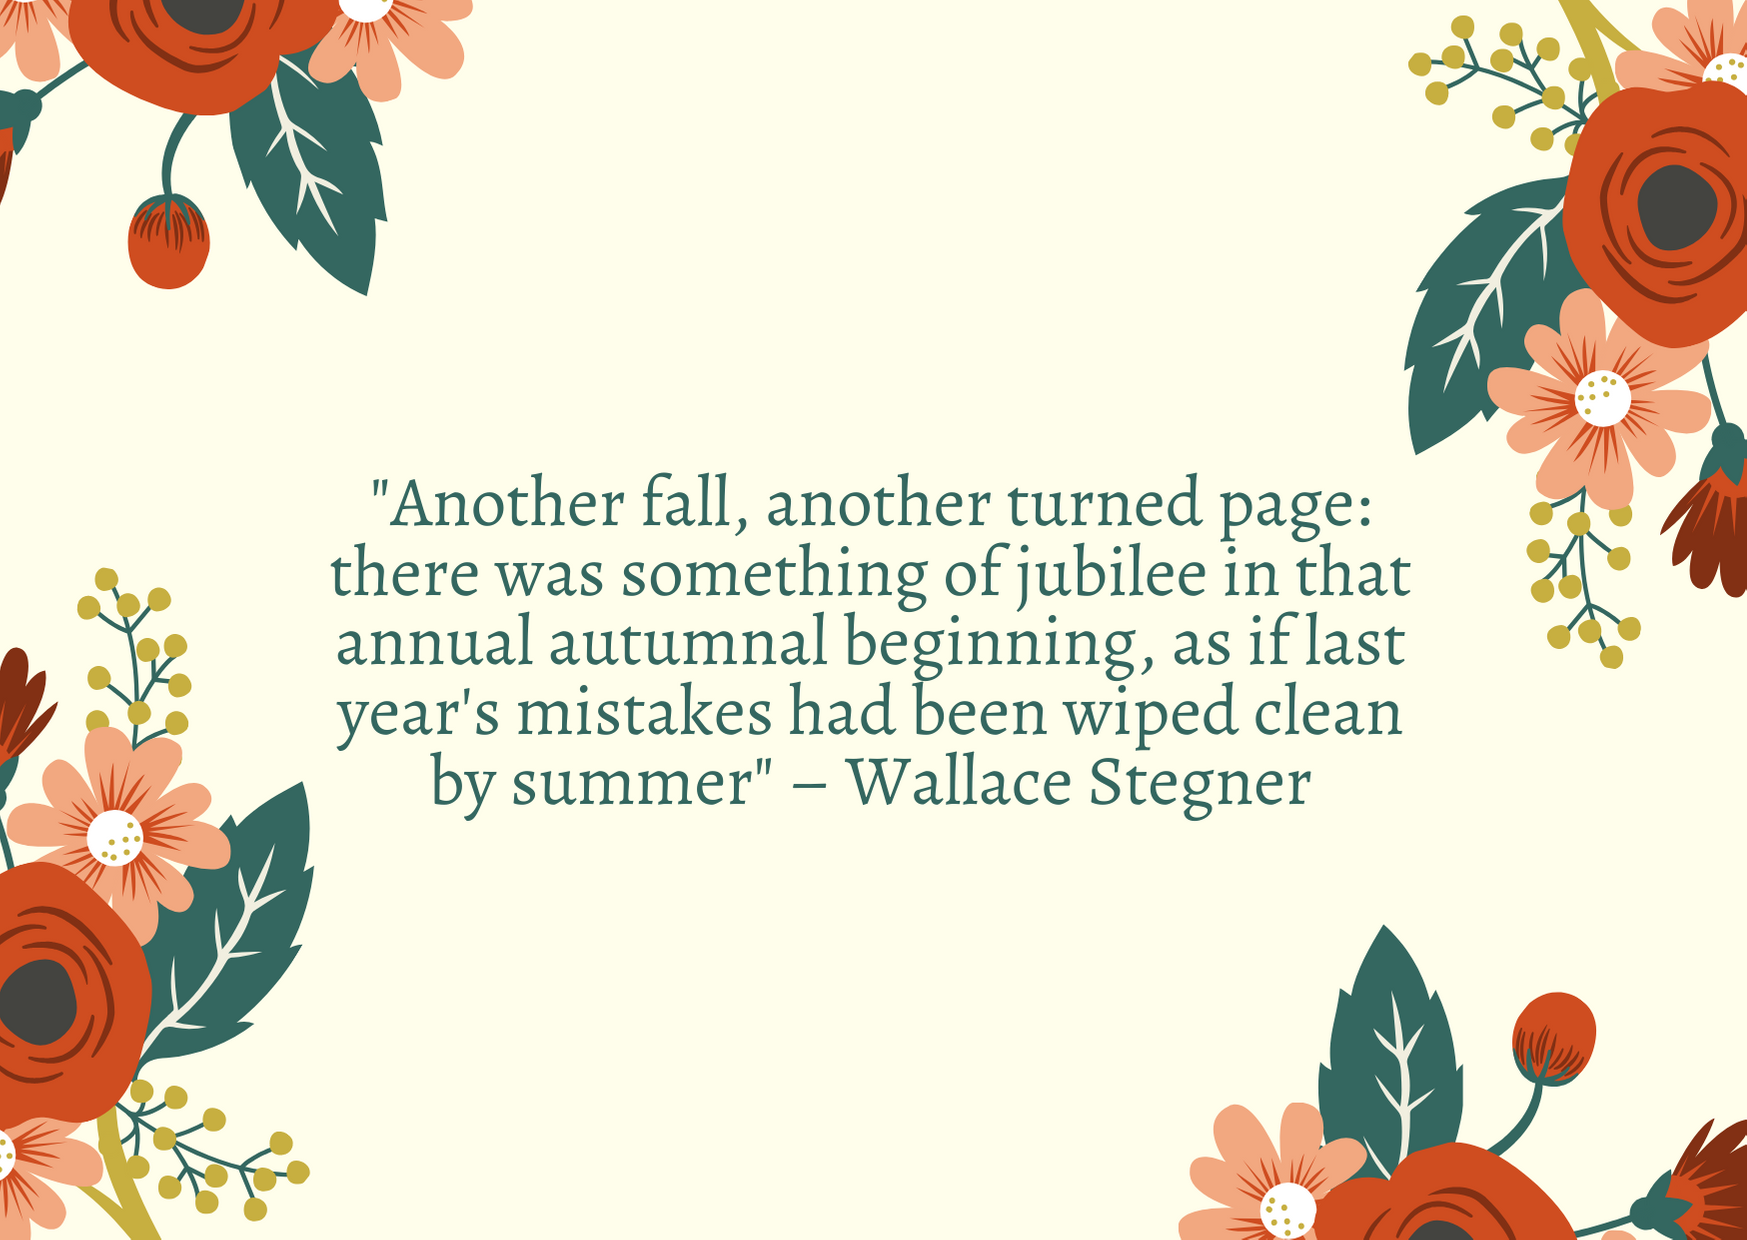 """Another fall, another turned page: there was something of jubilee in that annual autumnal beginning, as if last year's mistakes had been wiped clean by summer"" – Wallace Stegner"